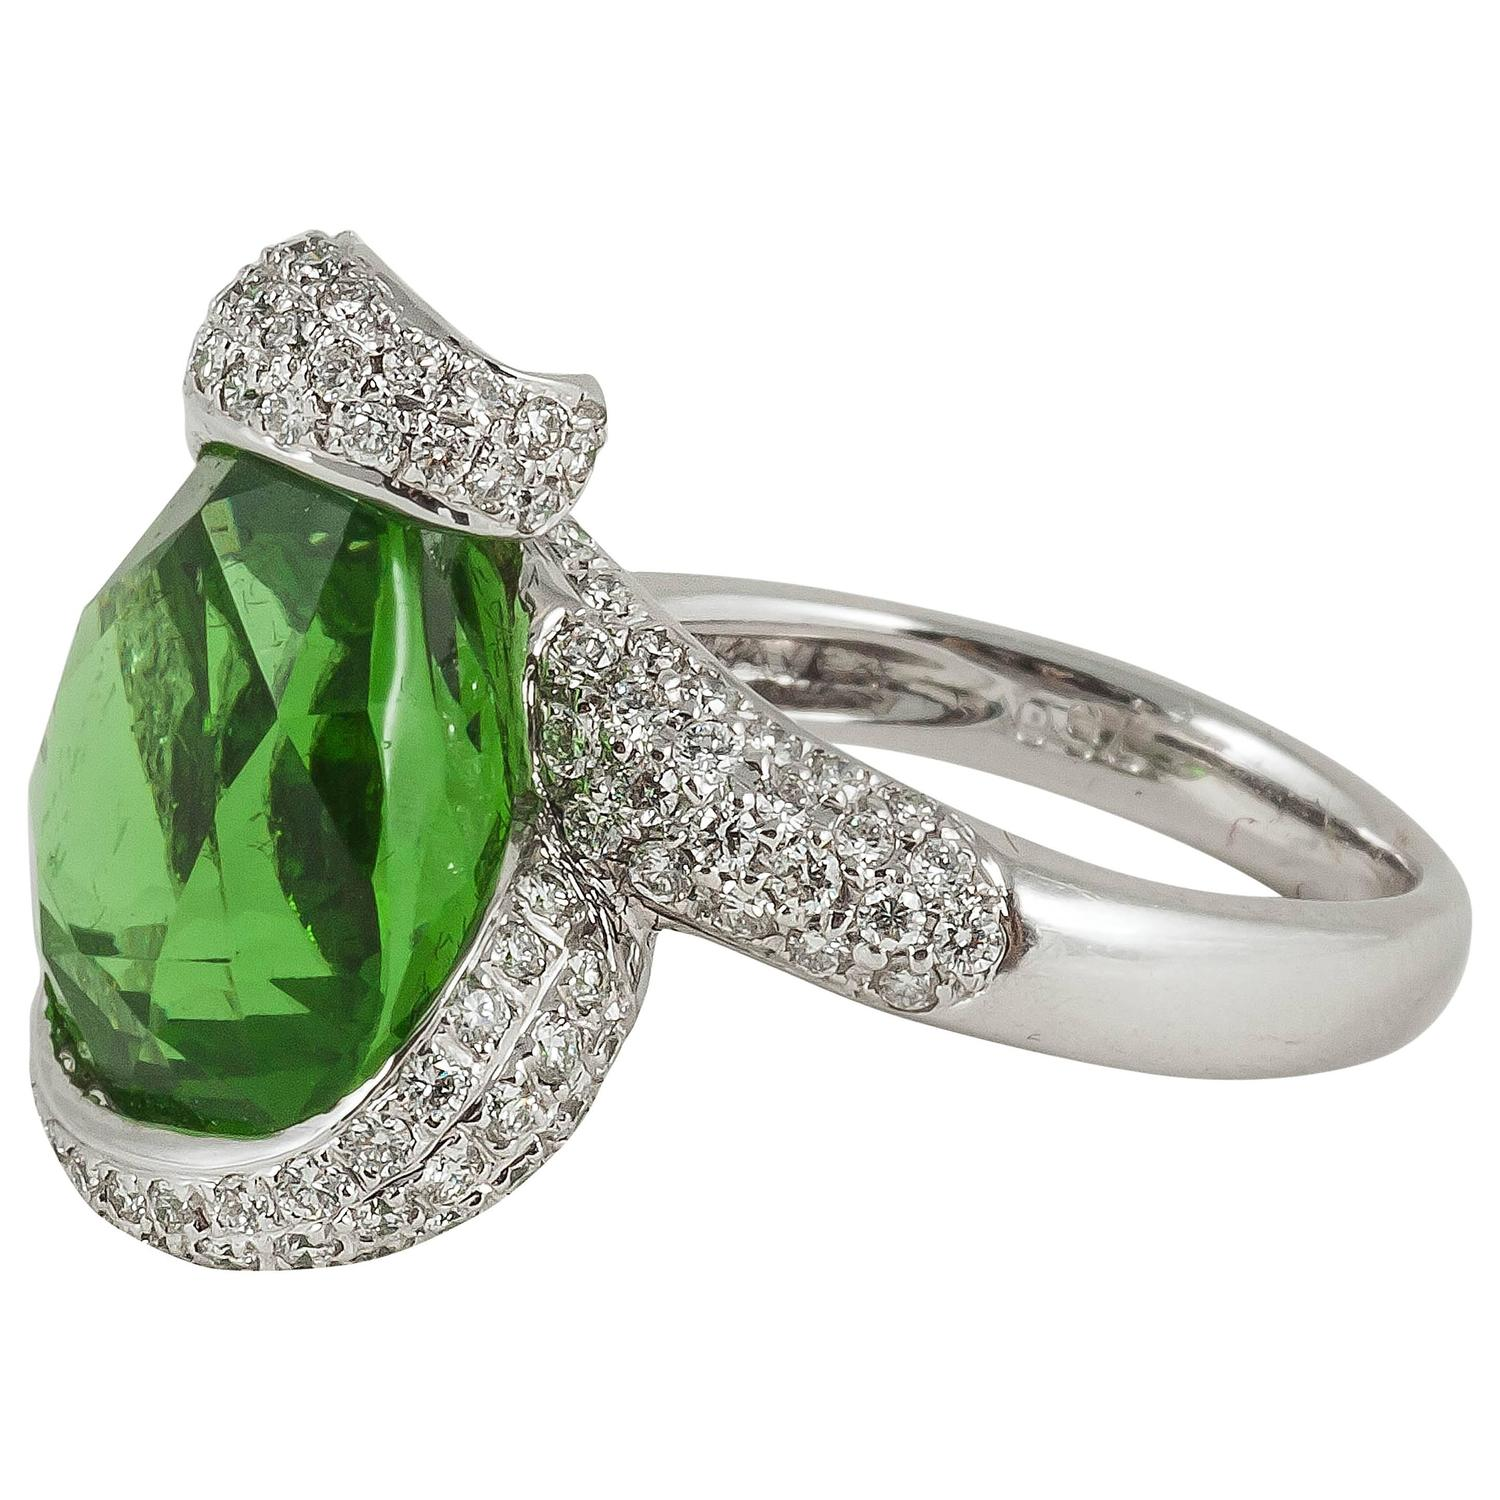 Pear shaped Tsavorite Diamond Gold ring For Sale at 1stdibs